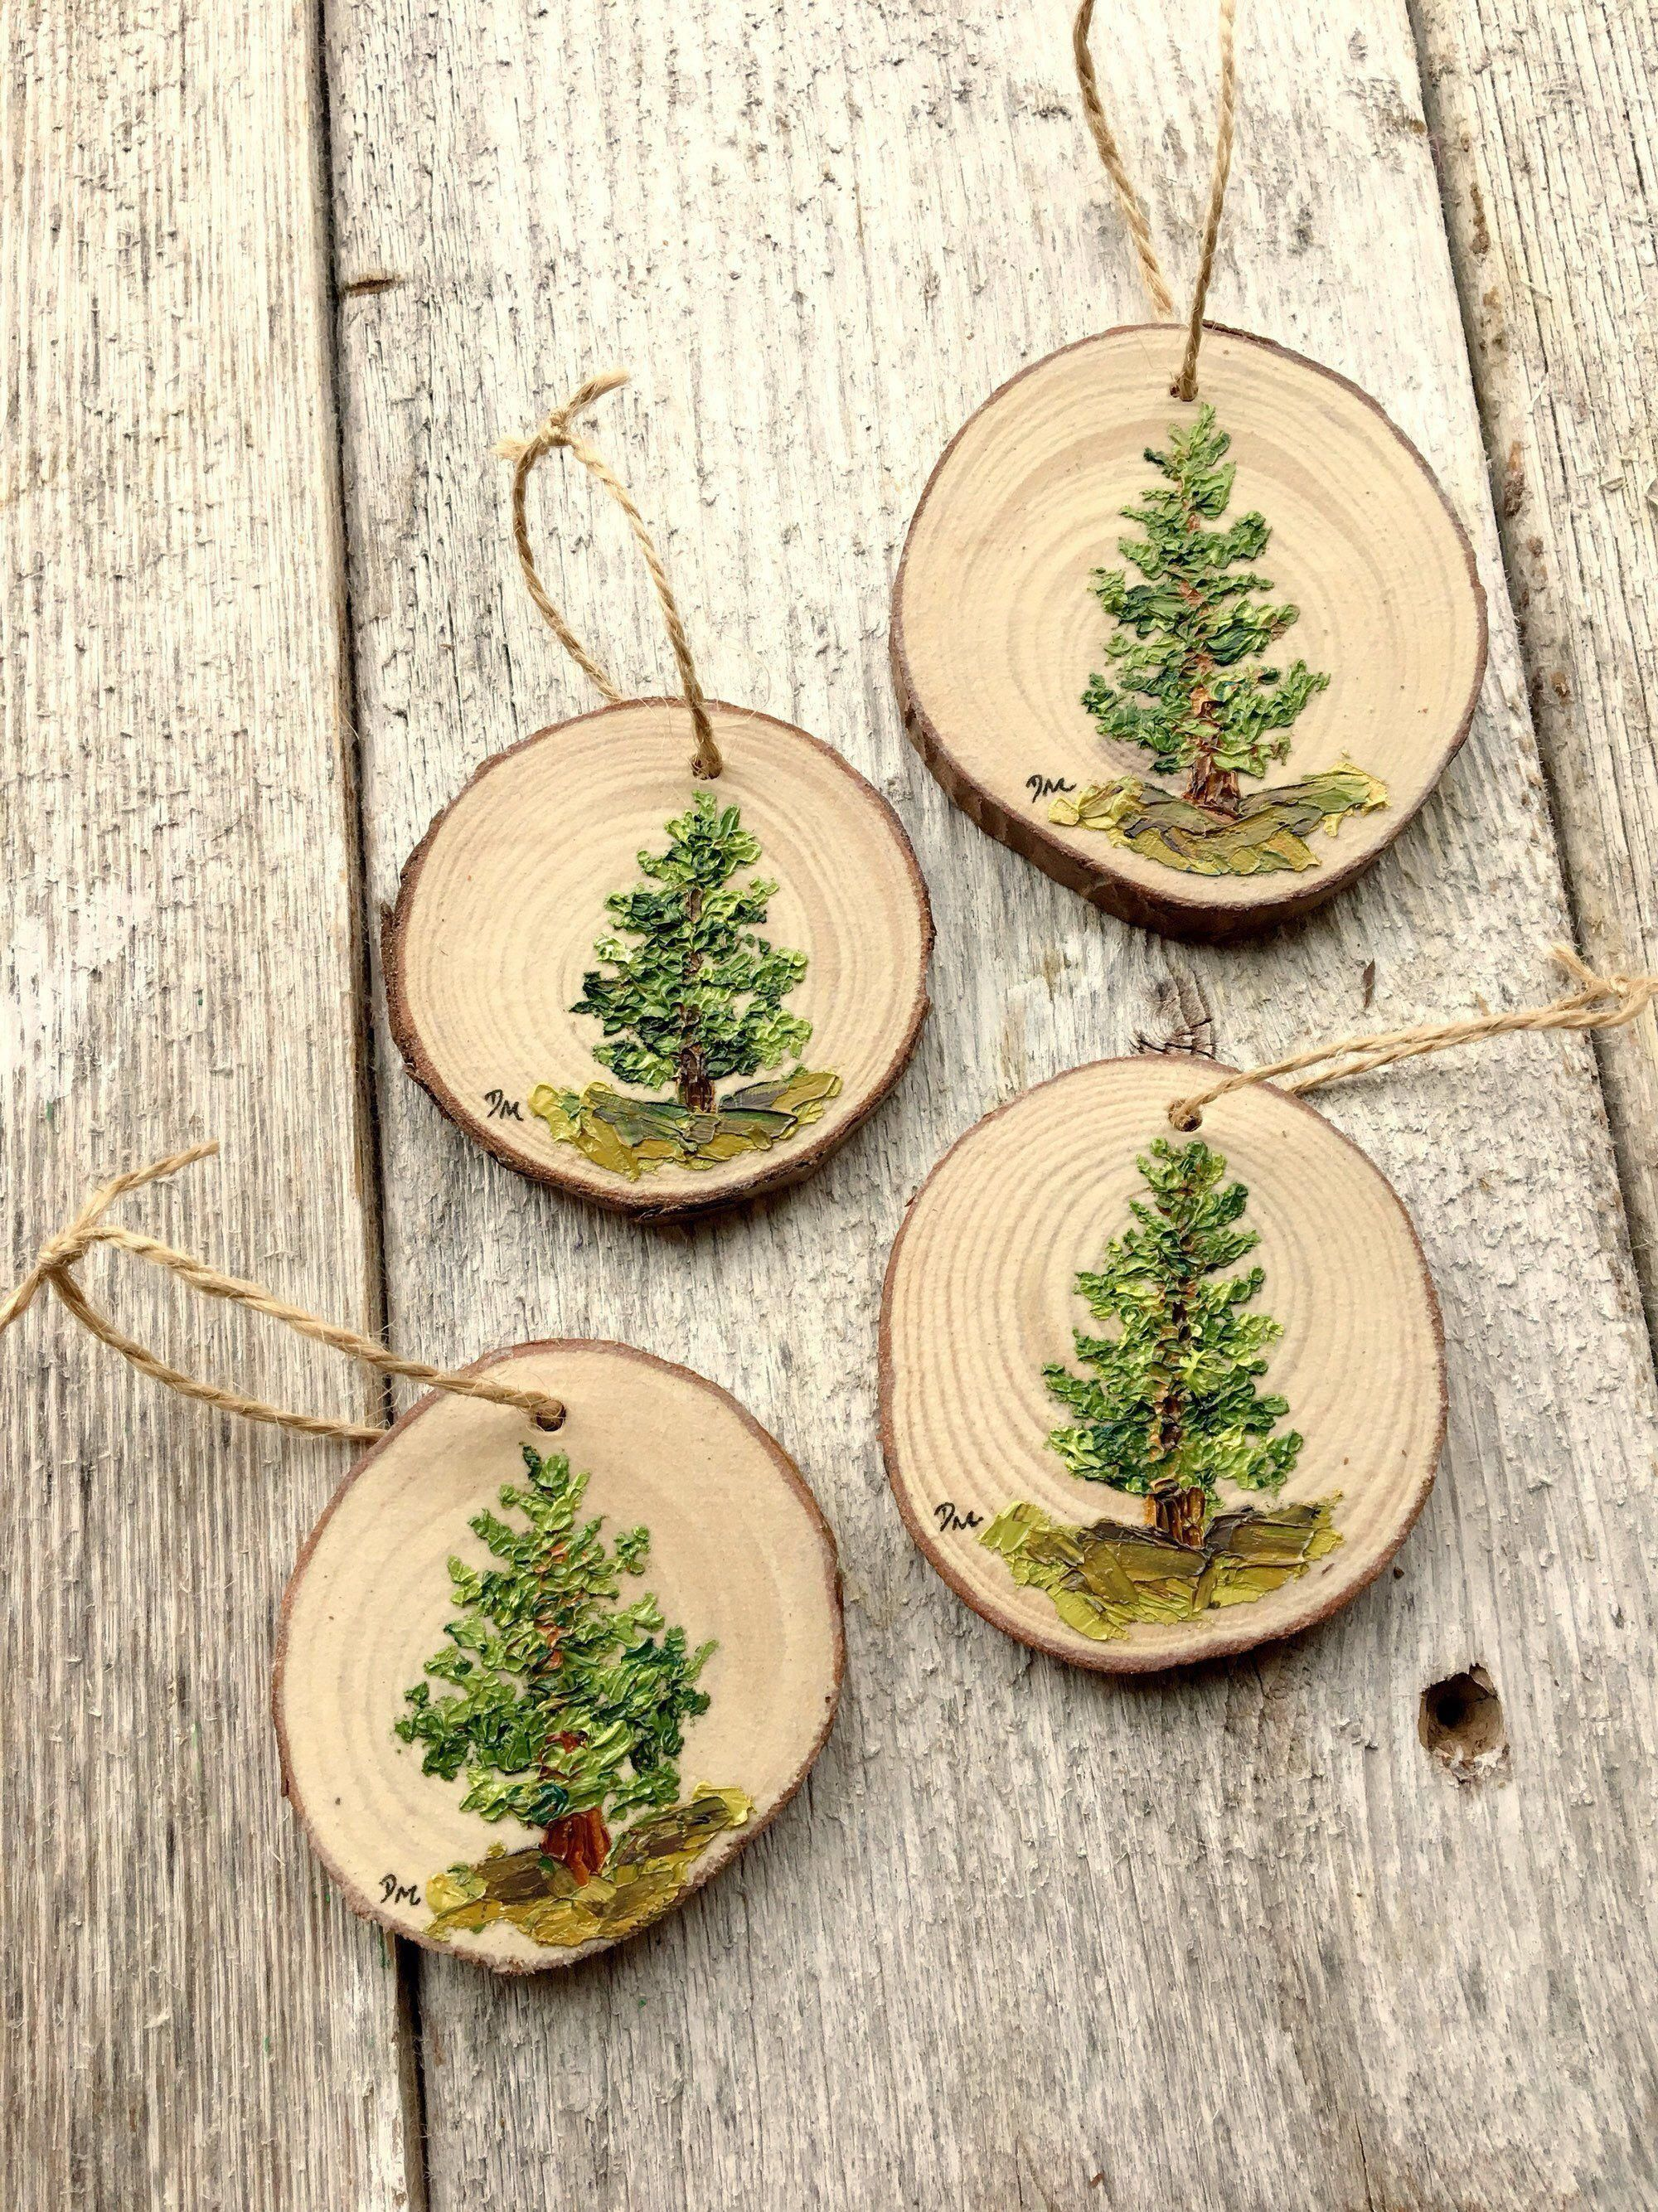 Hand Painted Ornament Rustic Ornament Tree Wood Slice Etsy Christmas Wood Wood Christmas Ornaments Painted Ornaments